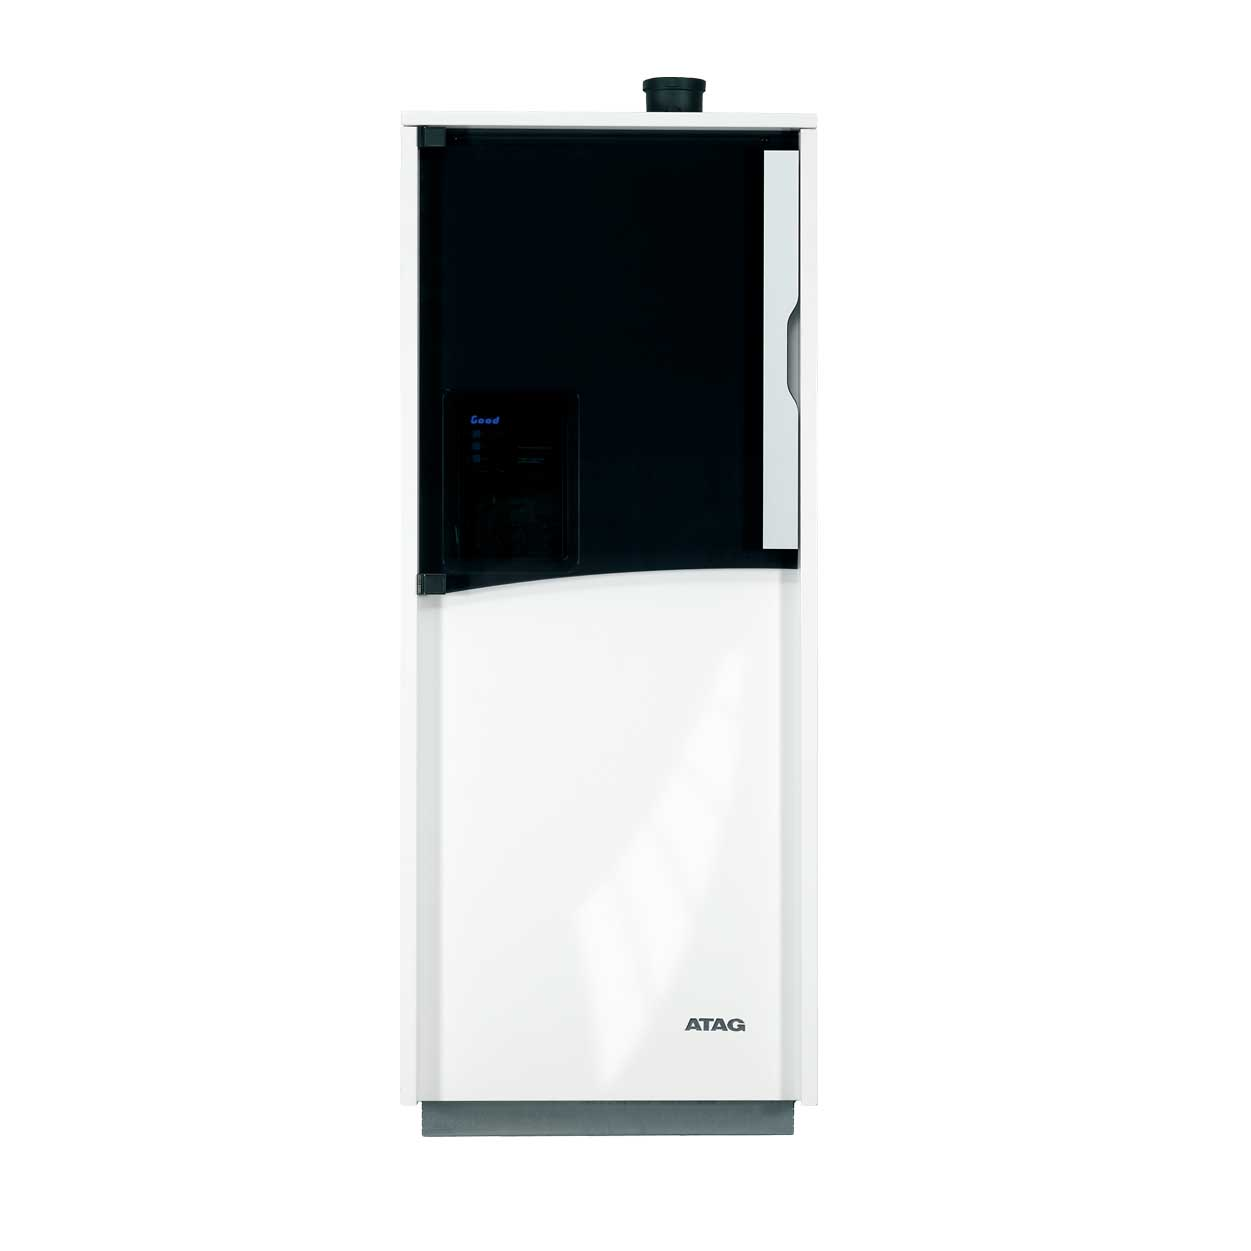 atag warmwaterkanon cv-ketel q-cc - product in beeld